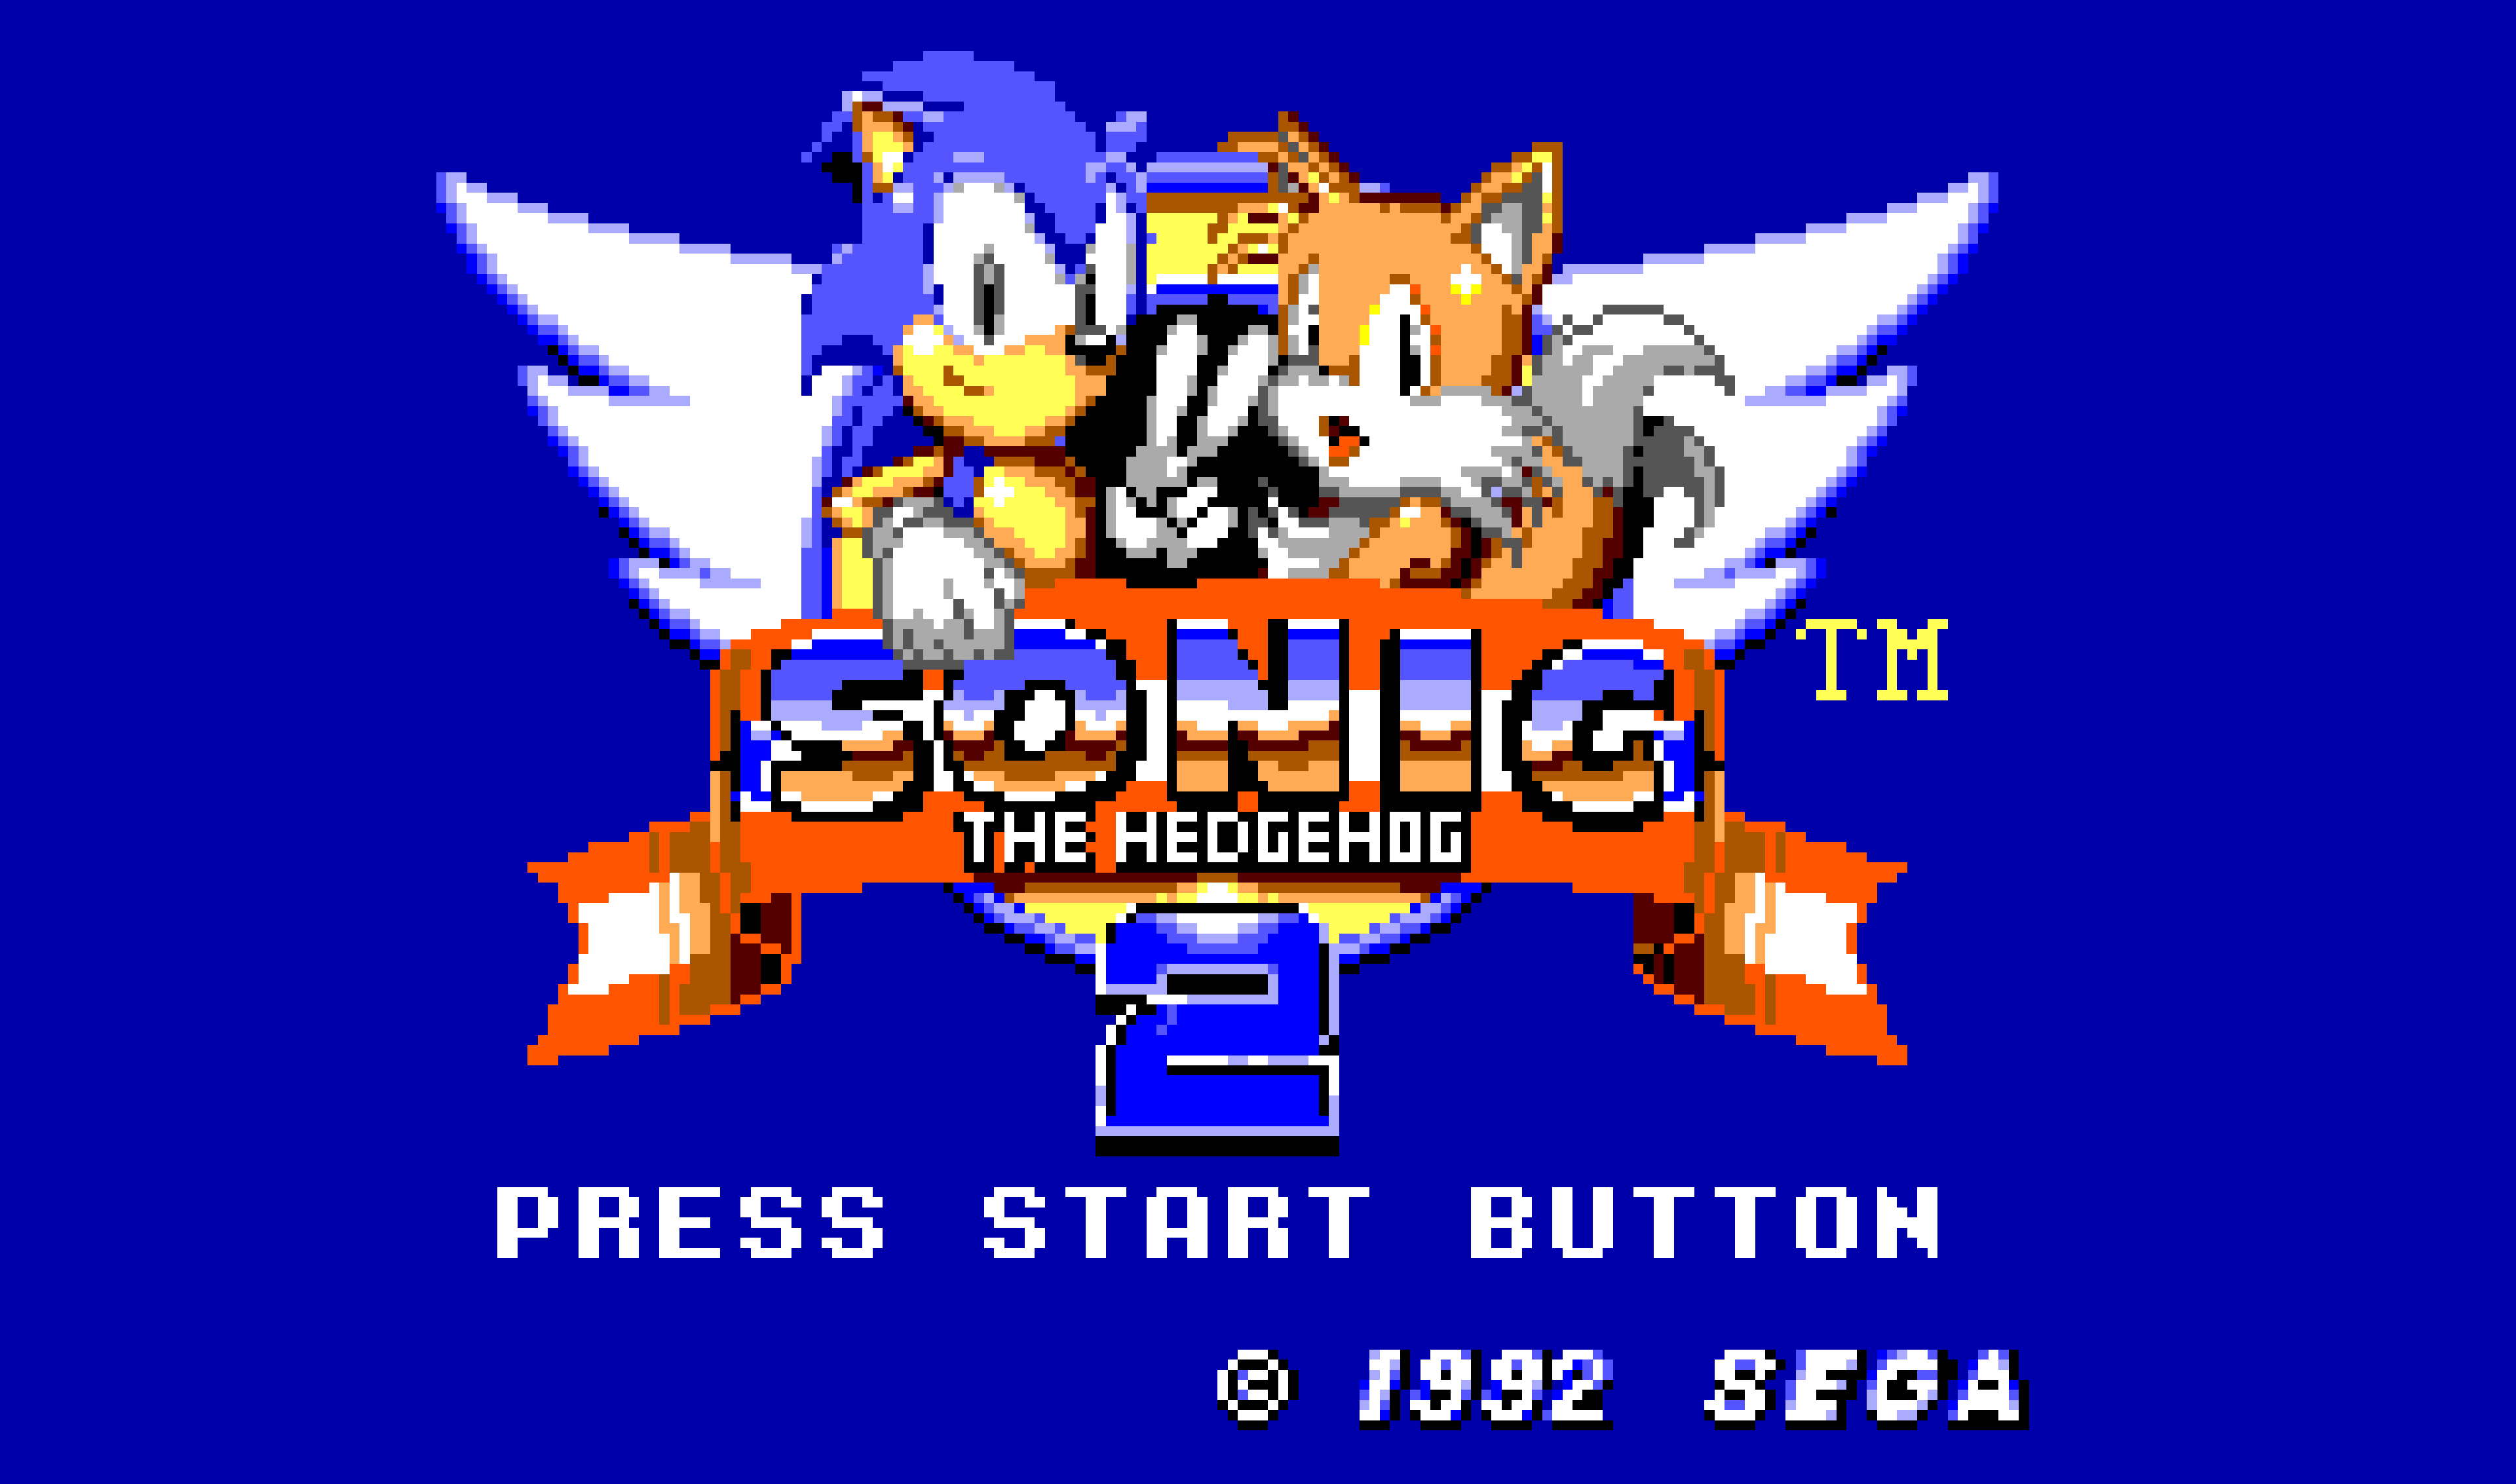 sonic the hedgehog game over music